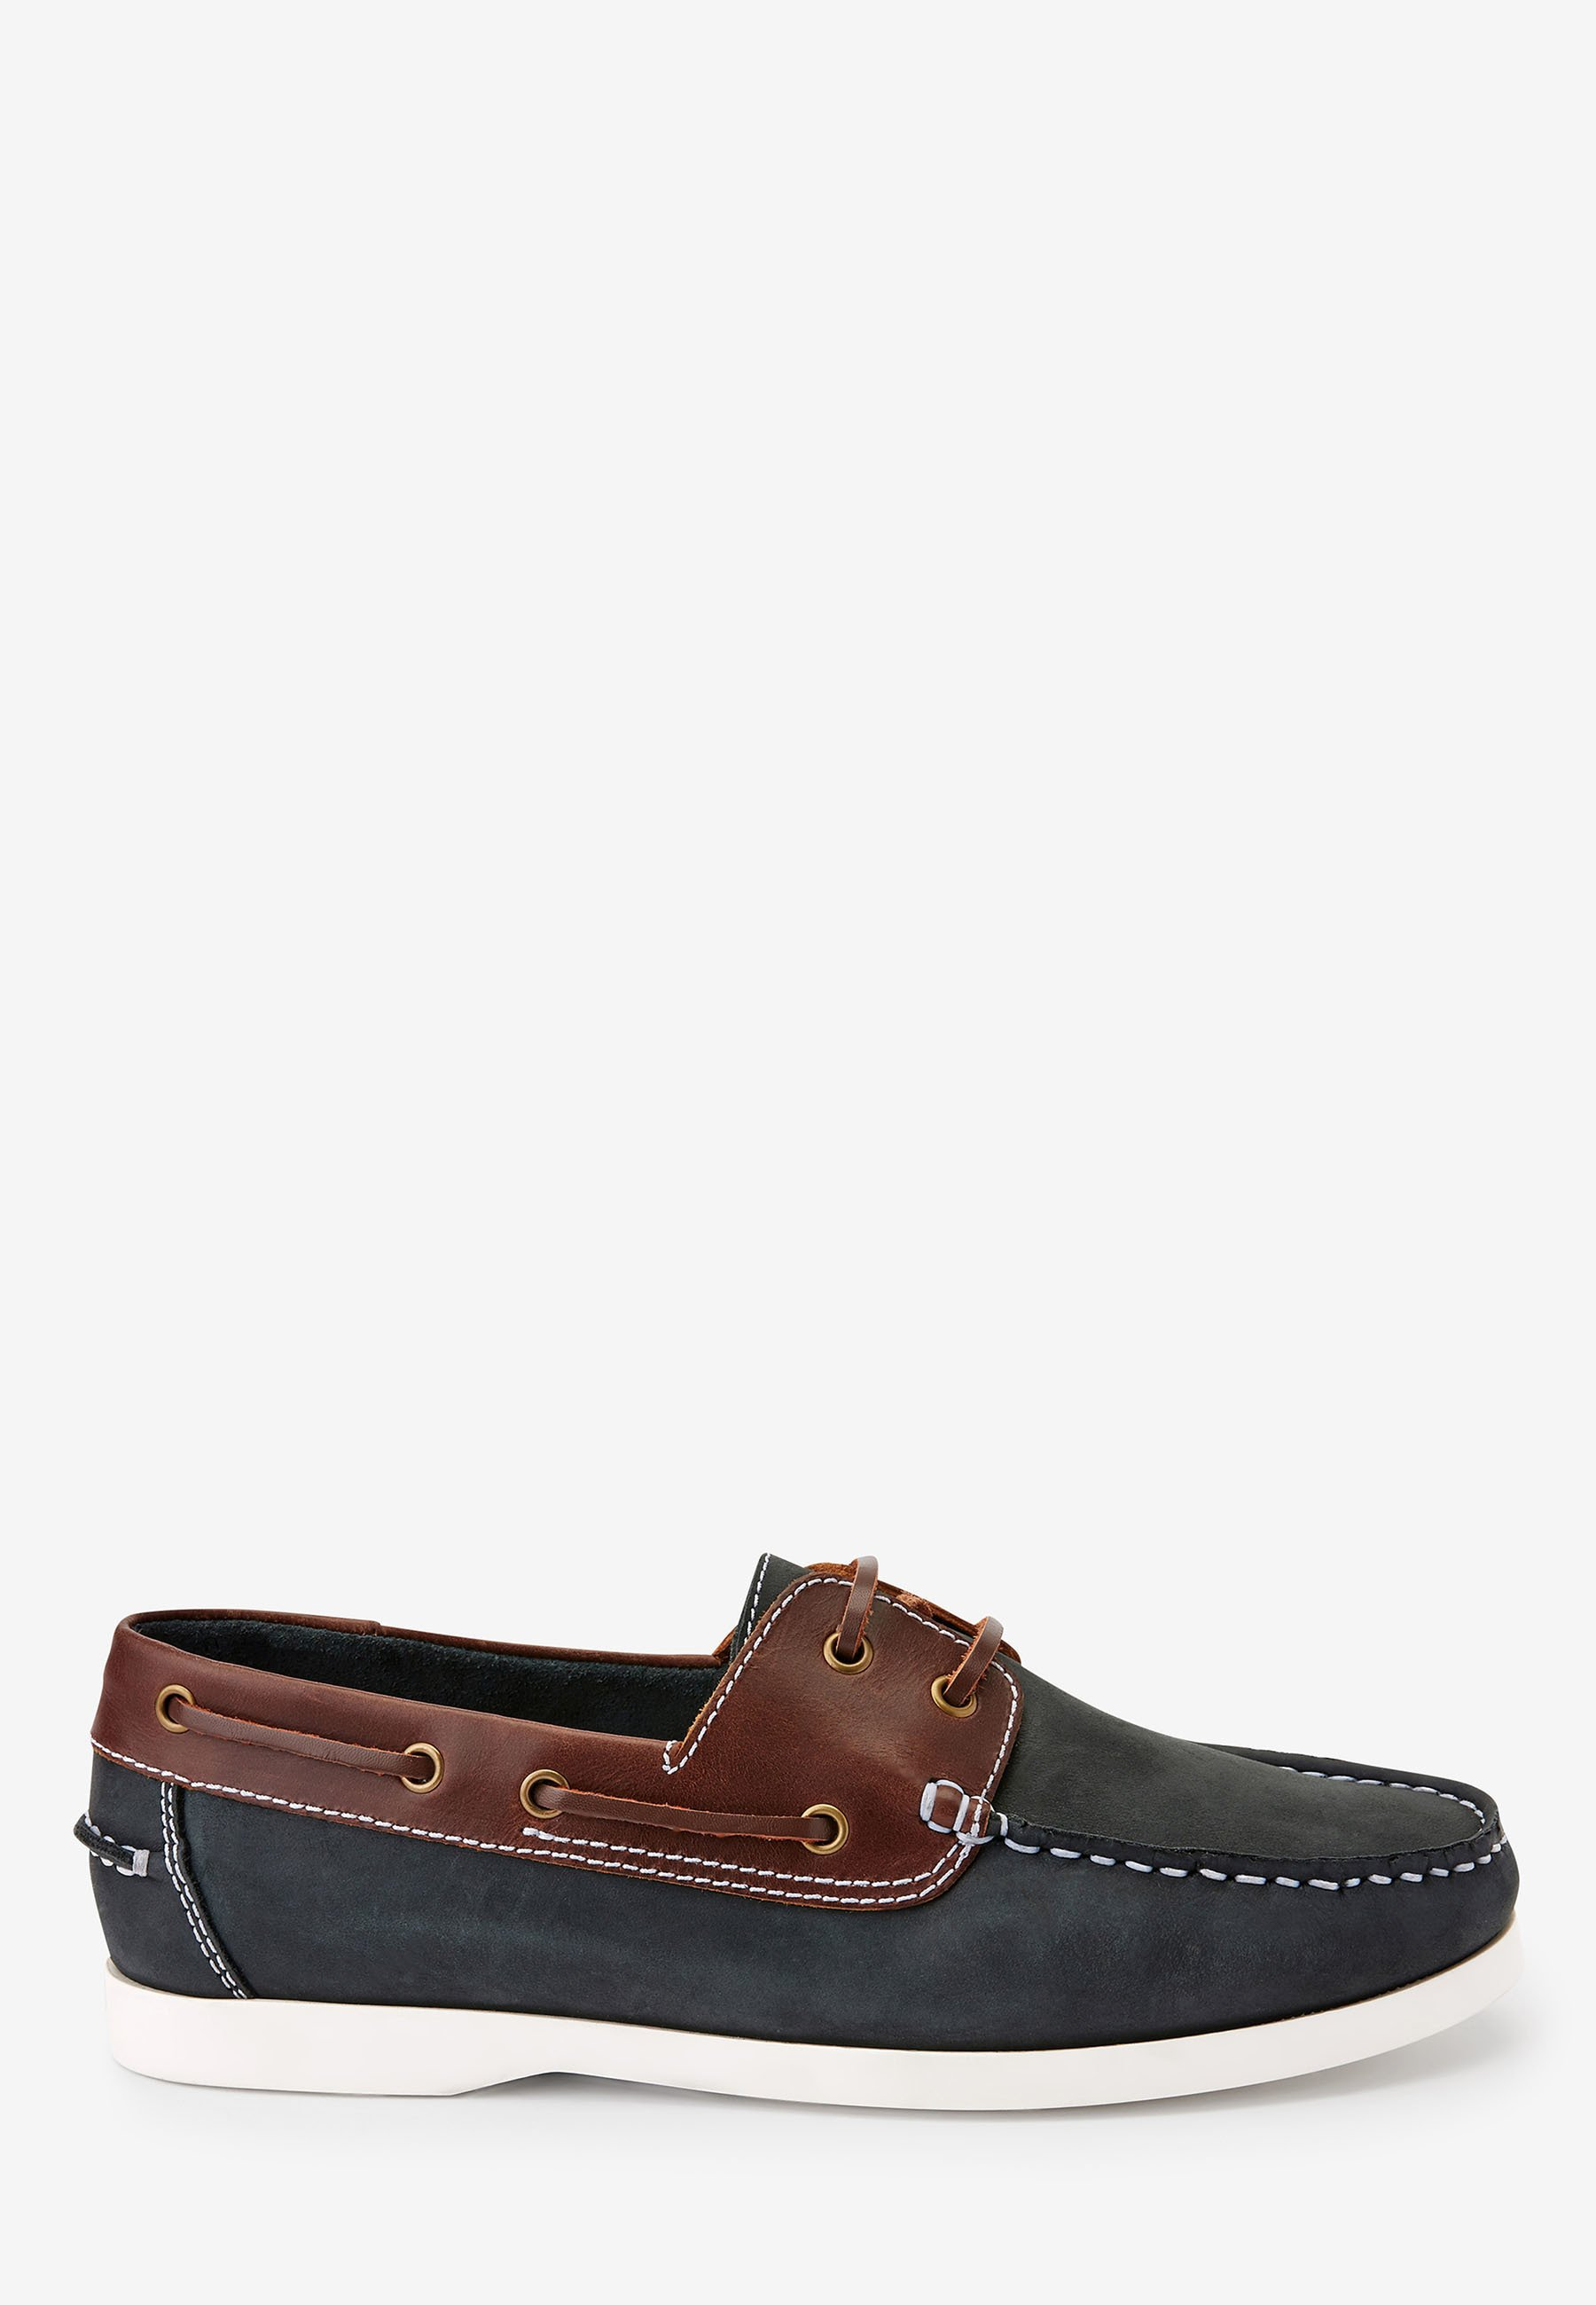 Homme NAVY LEATHER BOAT SHOES - Chaussures bateau